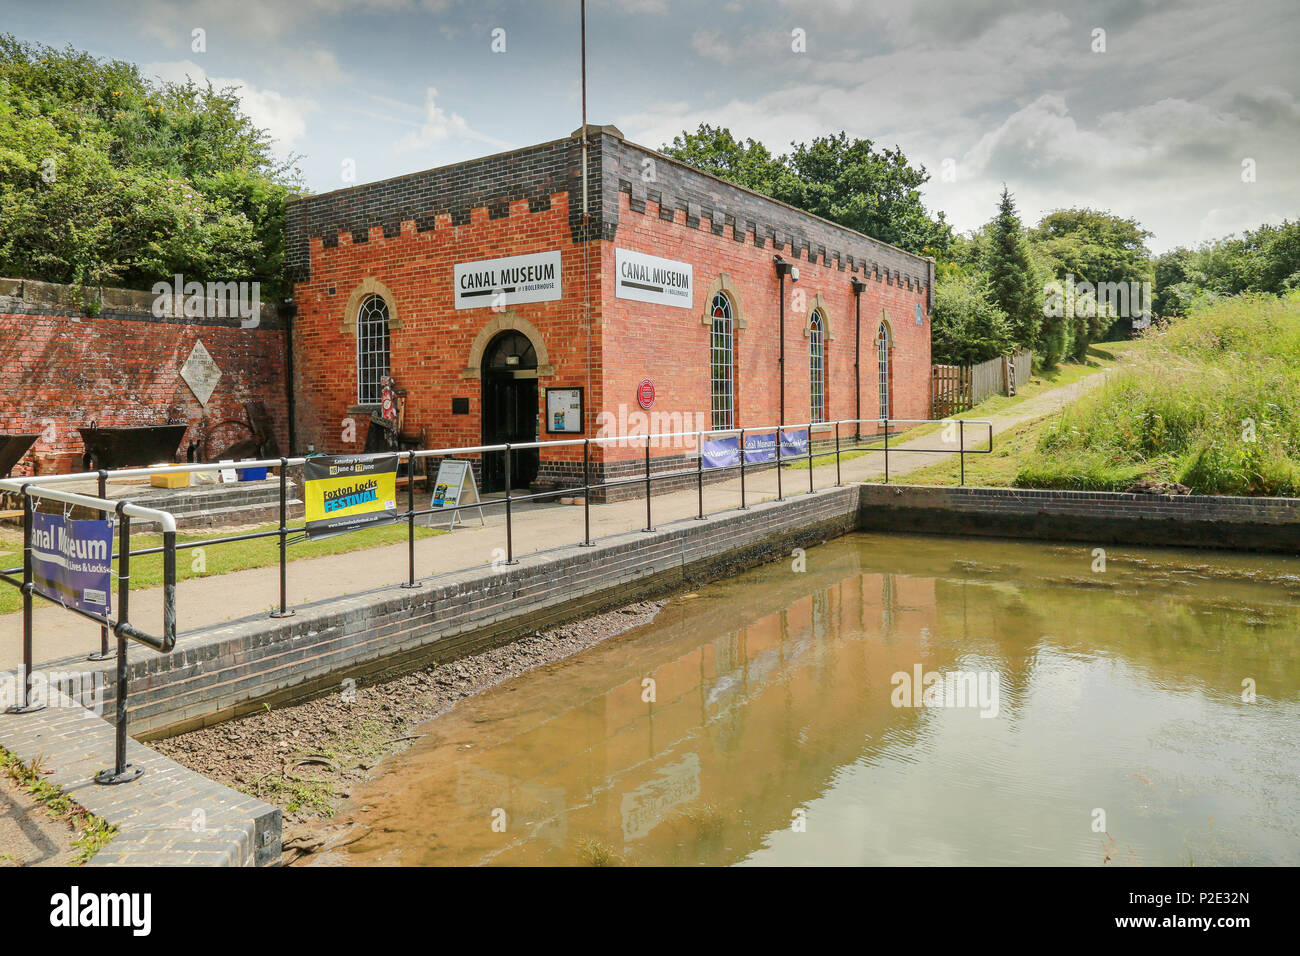 The Canal Museum at Foxton Locks in Leicestershire - Stock Image